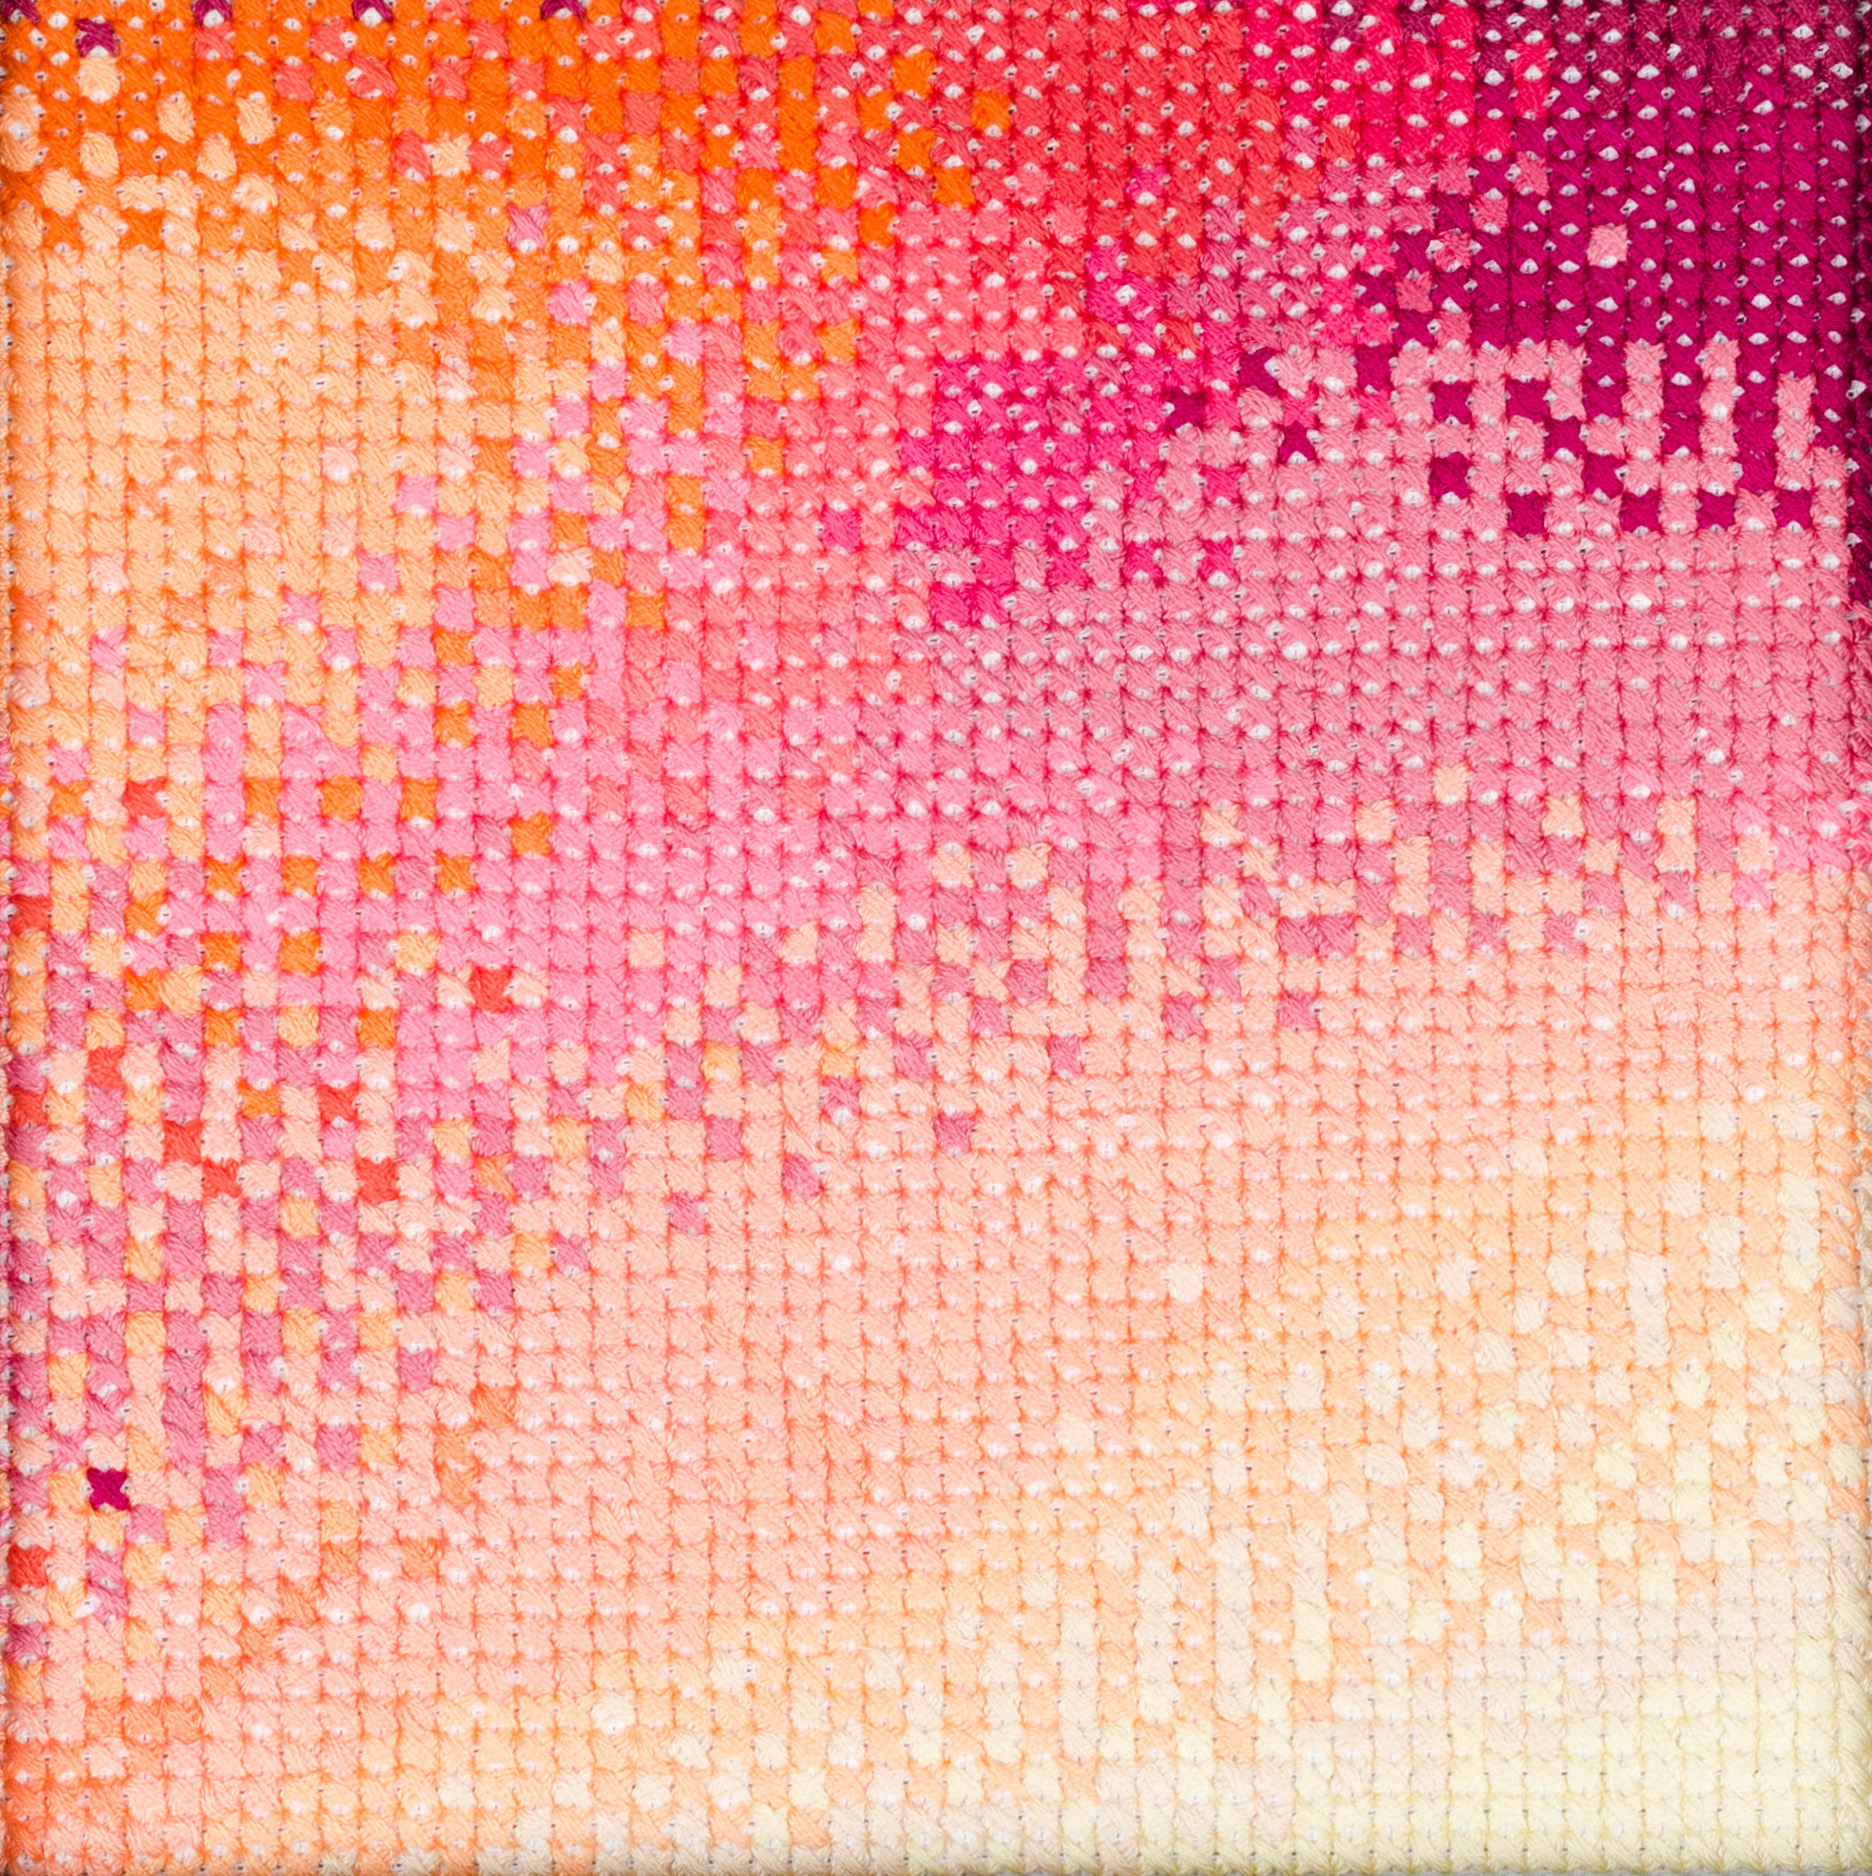 PIERRE LE RICHE. Gradient in pink and orange, 2016. Cross-stitch embroidery on Aida cloth. 2500 stitched. 190 x 190mm. Framed.jpg